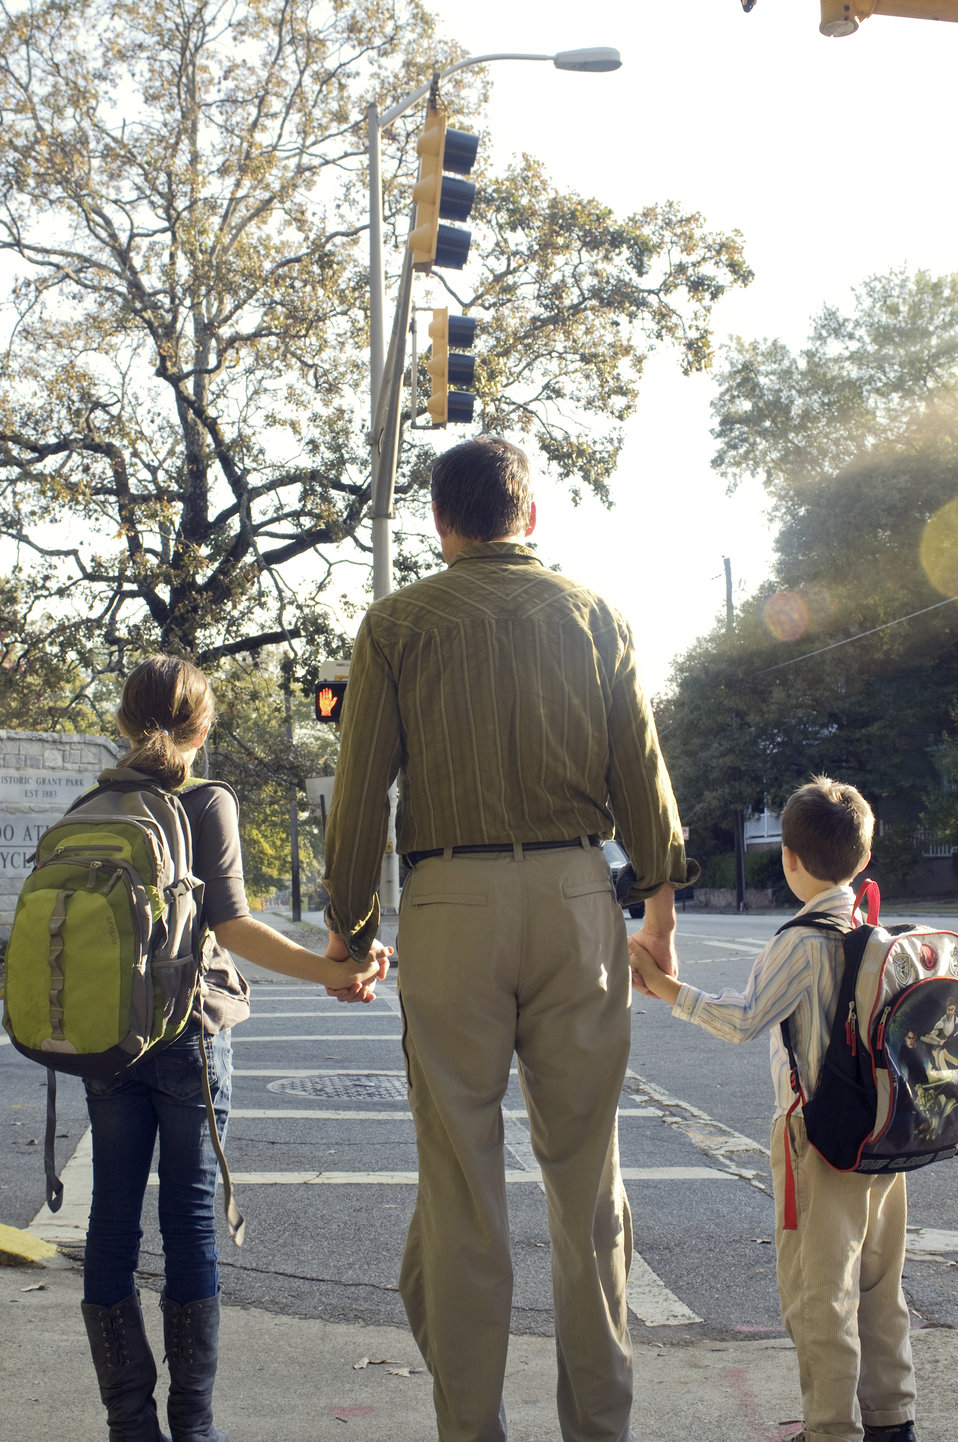 A father walking with his children